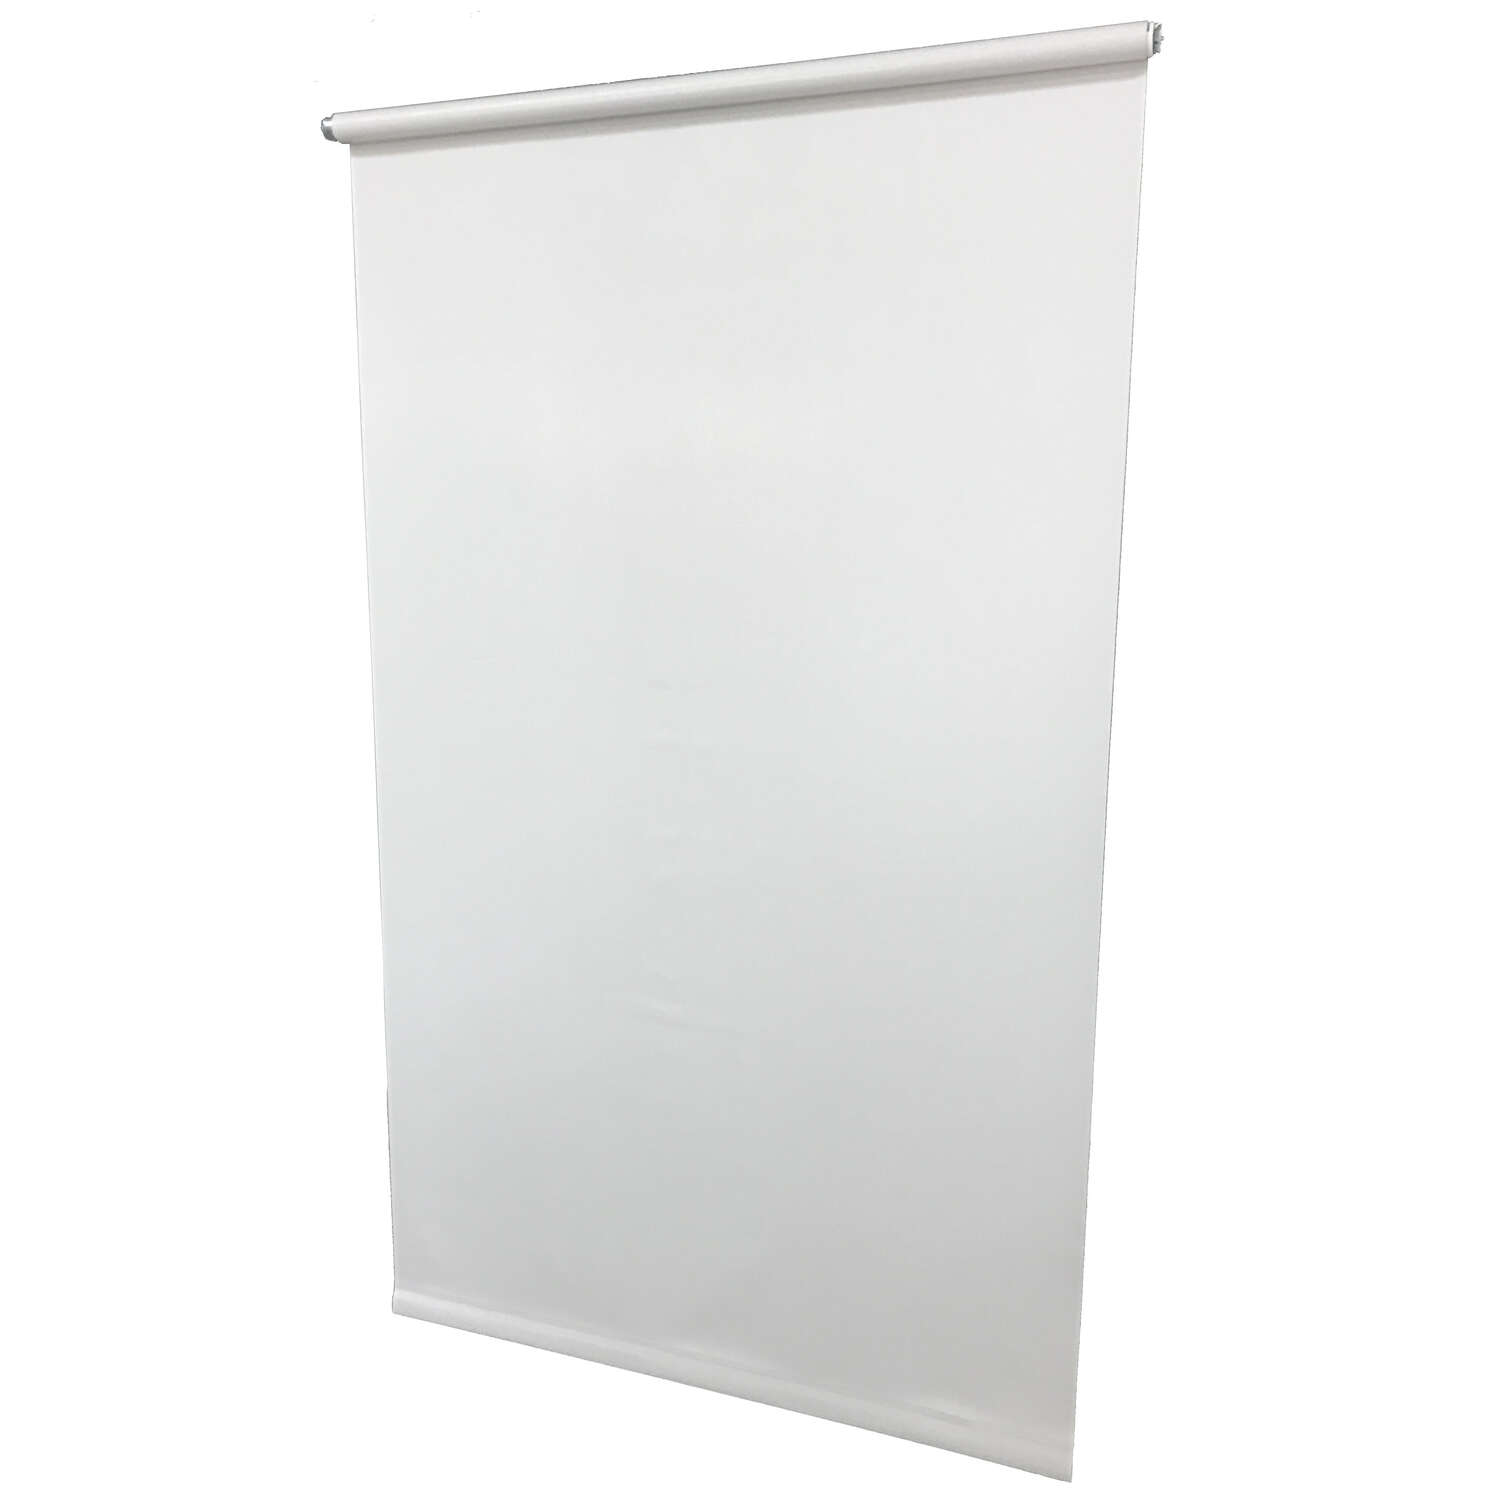 Friedland  Jupiter  White  Economy Roller Shade  73 in. W x 72 in. L